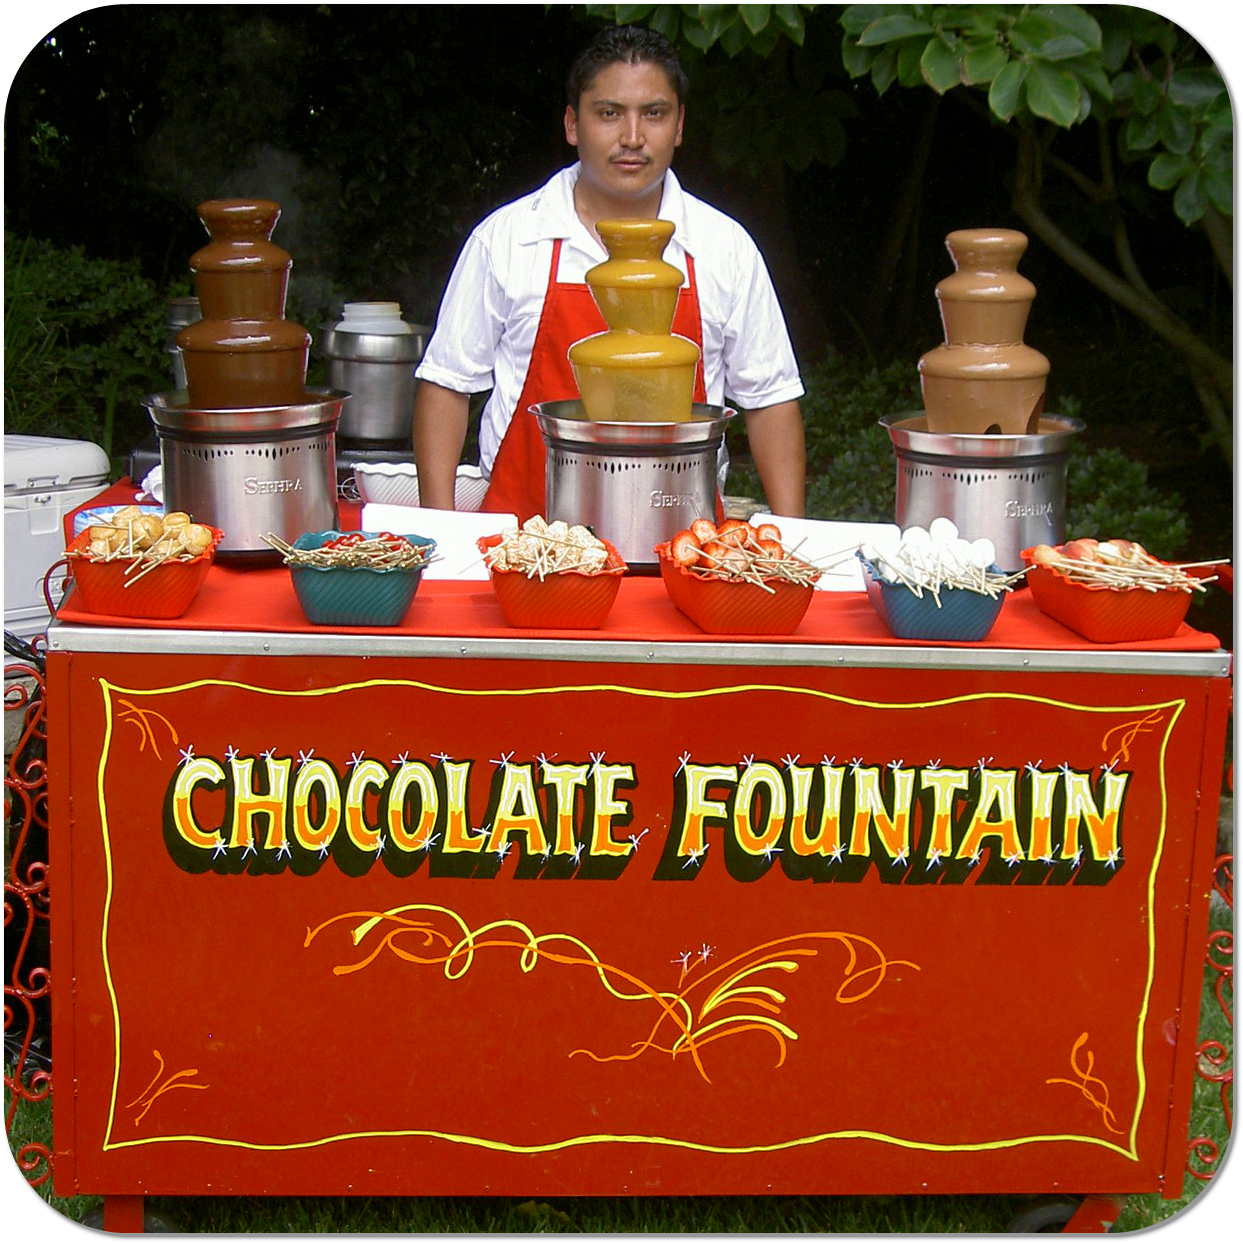 Chocolate Fountain Cart in Los Angeles, CA